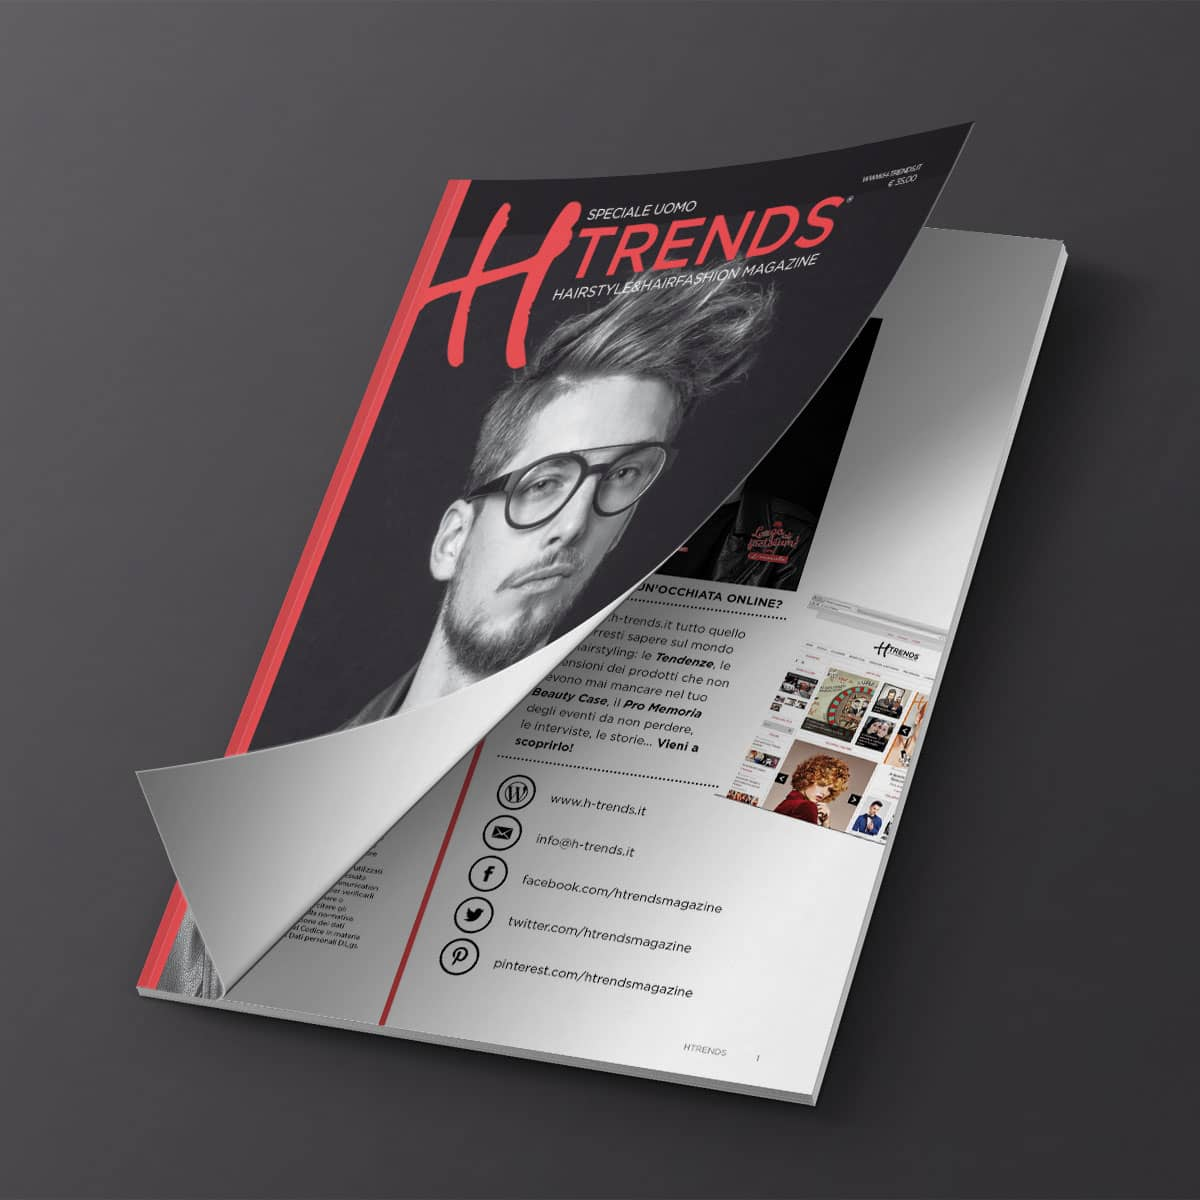 HTrends-uomo-6-front-cover-product